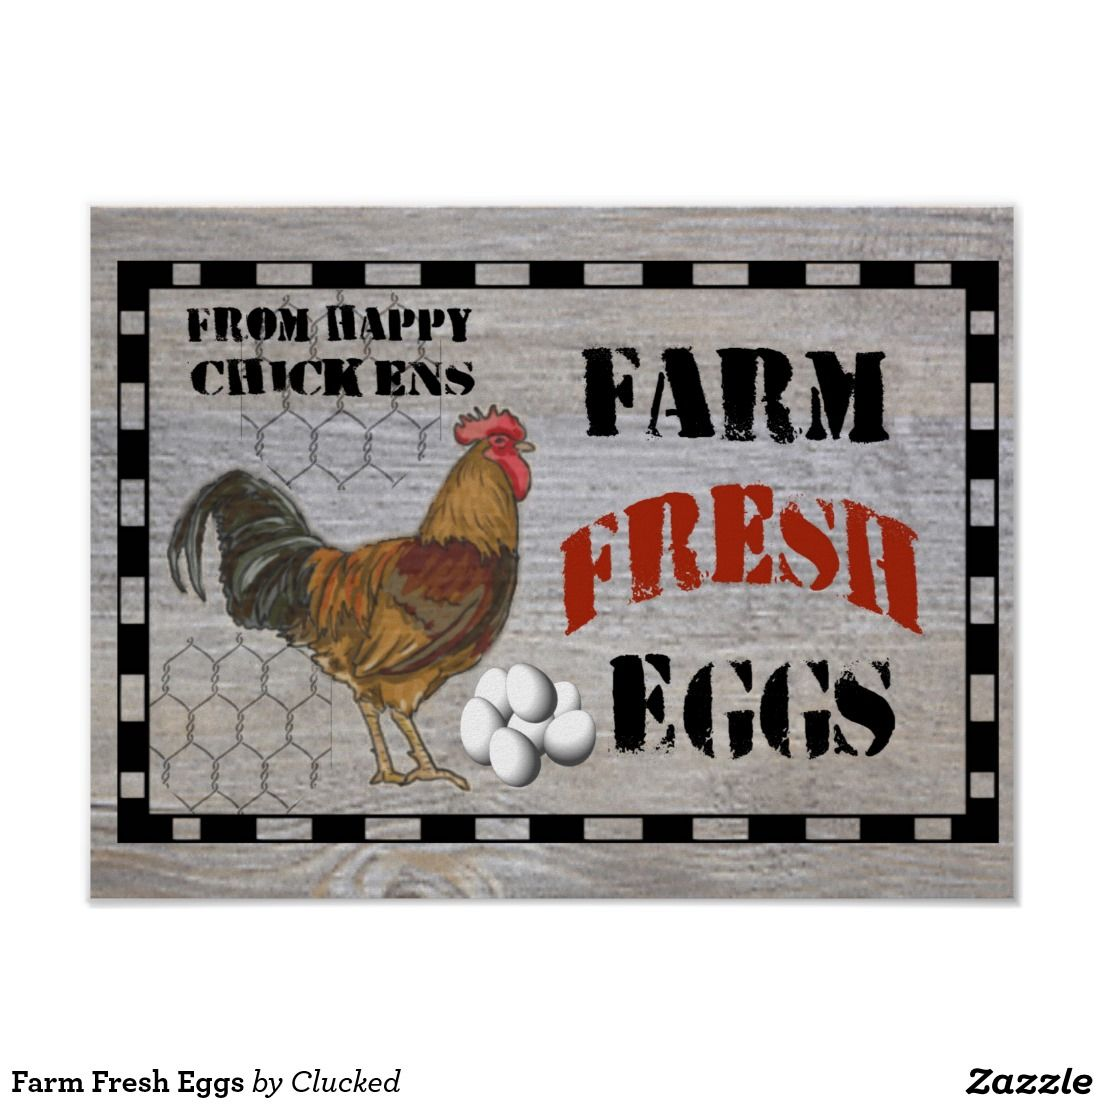 Farm Fresh Eggs Poster Selling eggs, Cards